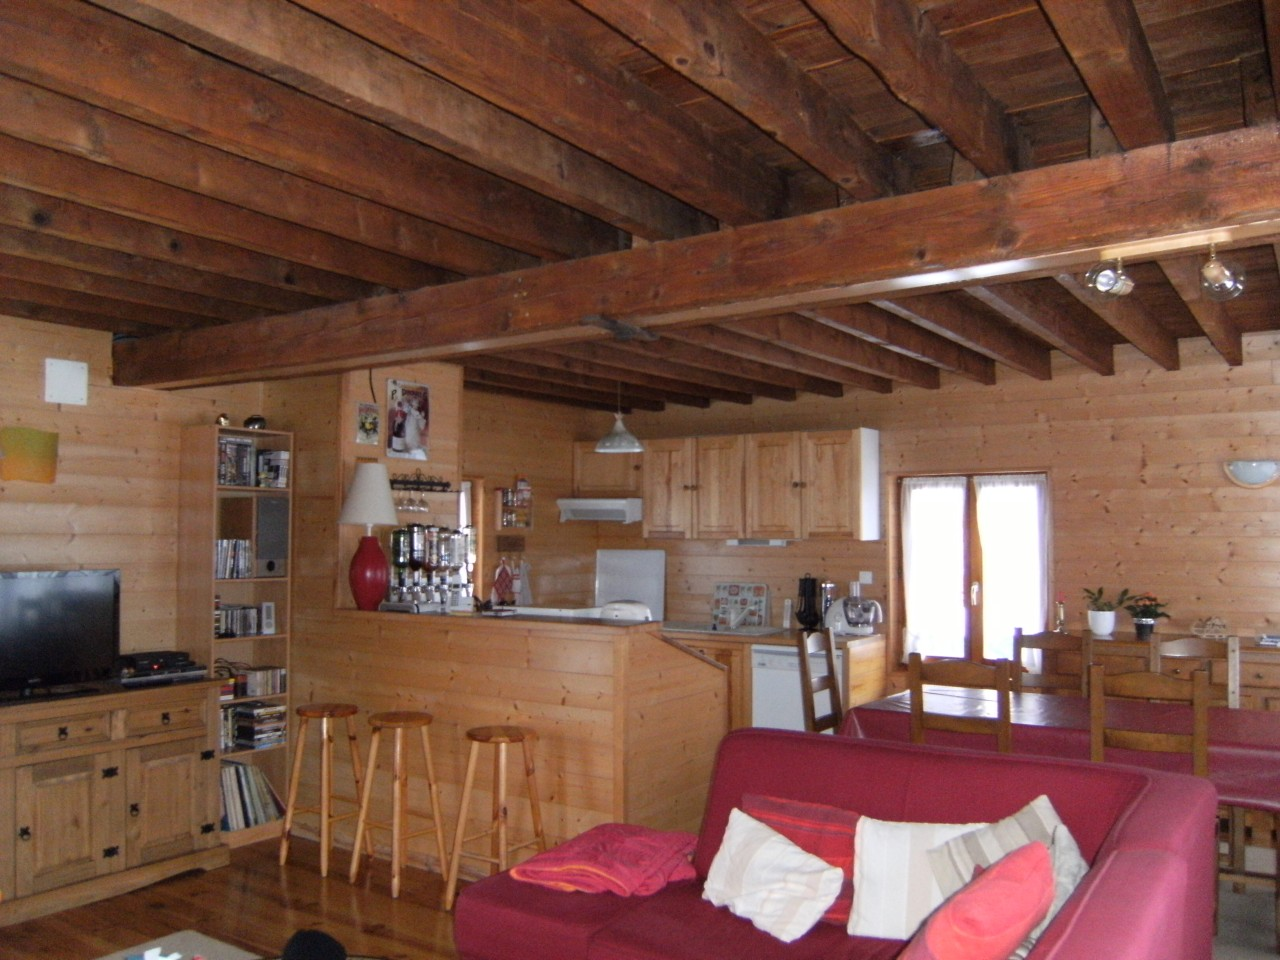 Agence immobili re g rardmer annonce chalets n 2205 for Agence immobiliere gerardmer